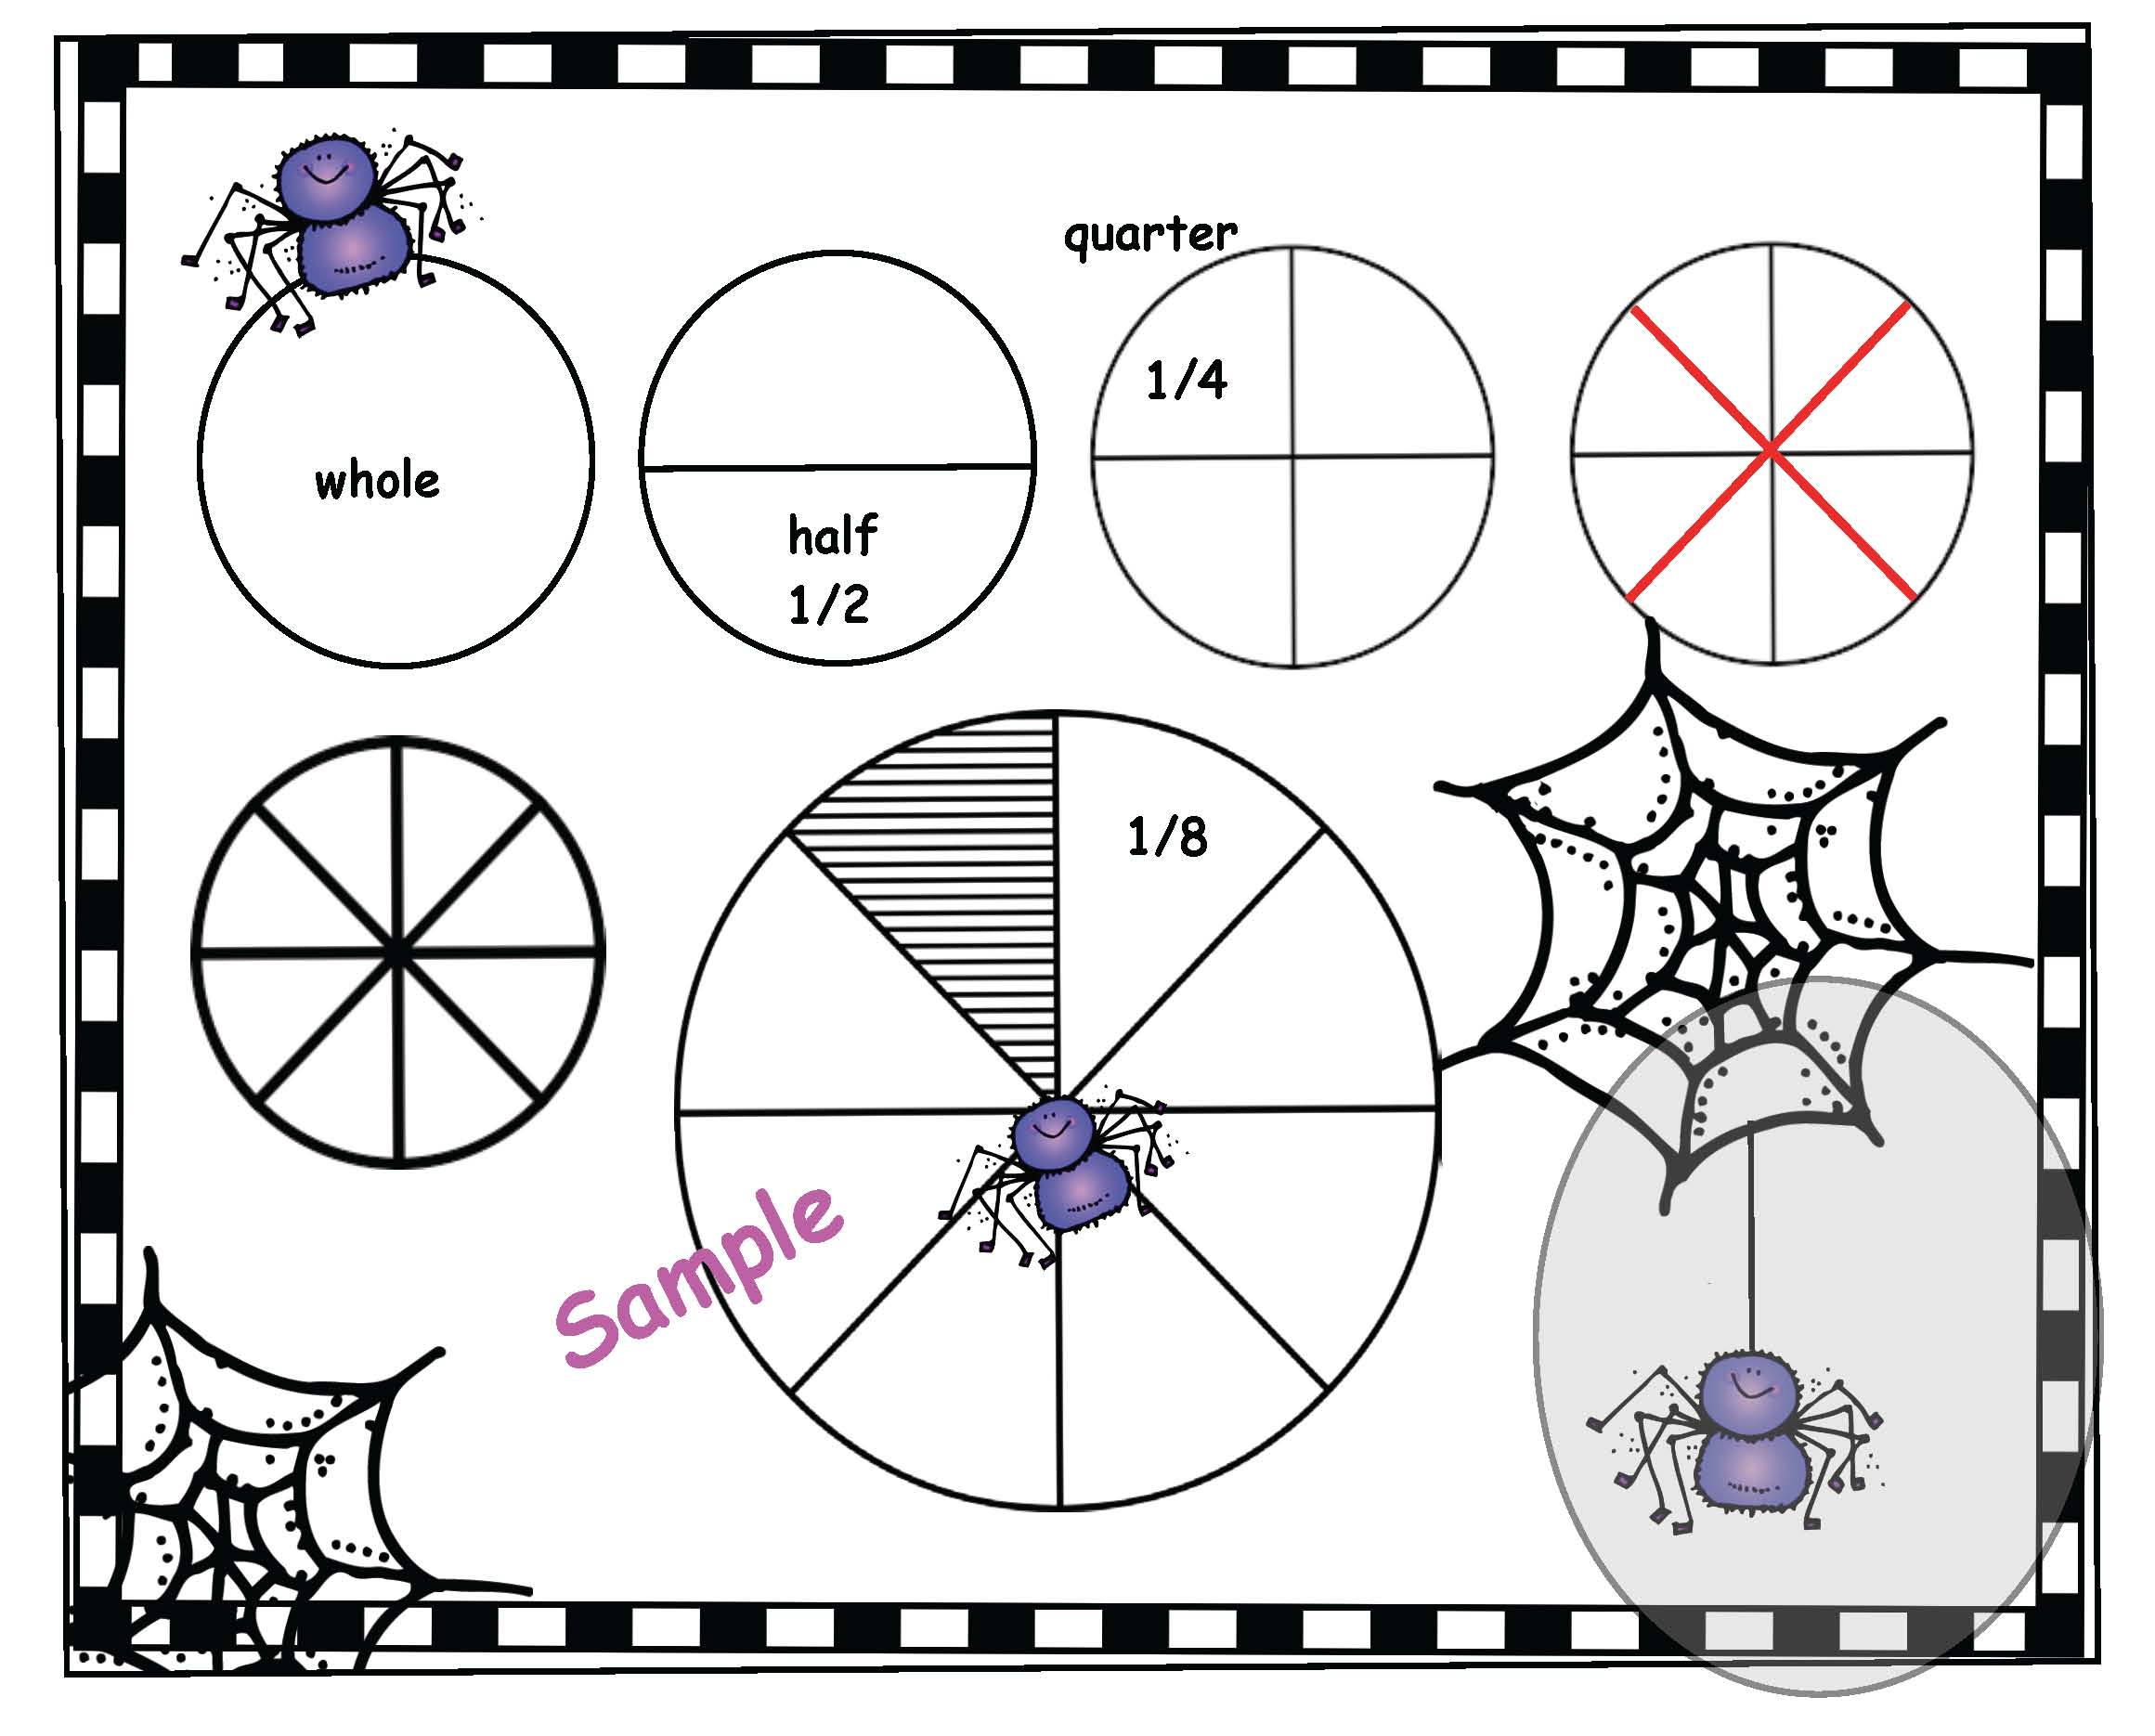 smath centers, math crafts, spider centers, spider activities, spider crafts, october bulletin board ideas. spider bulletin board ideas